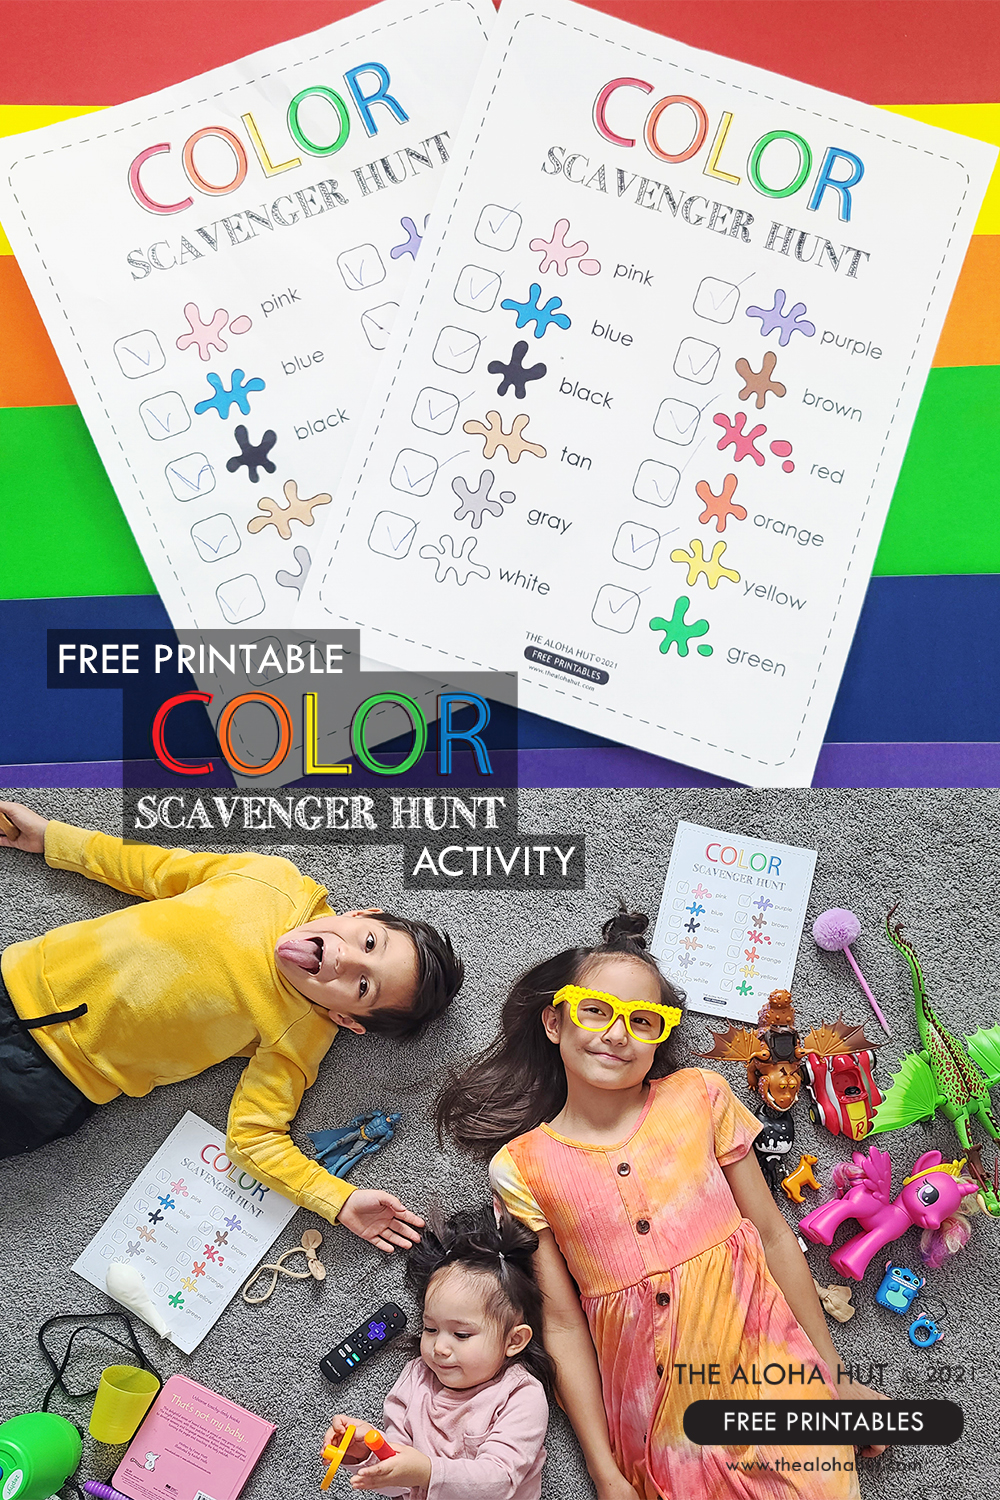 Free Printable Color Scavenger Hunt Activity for Kids by the Aloha Hut